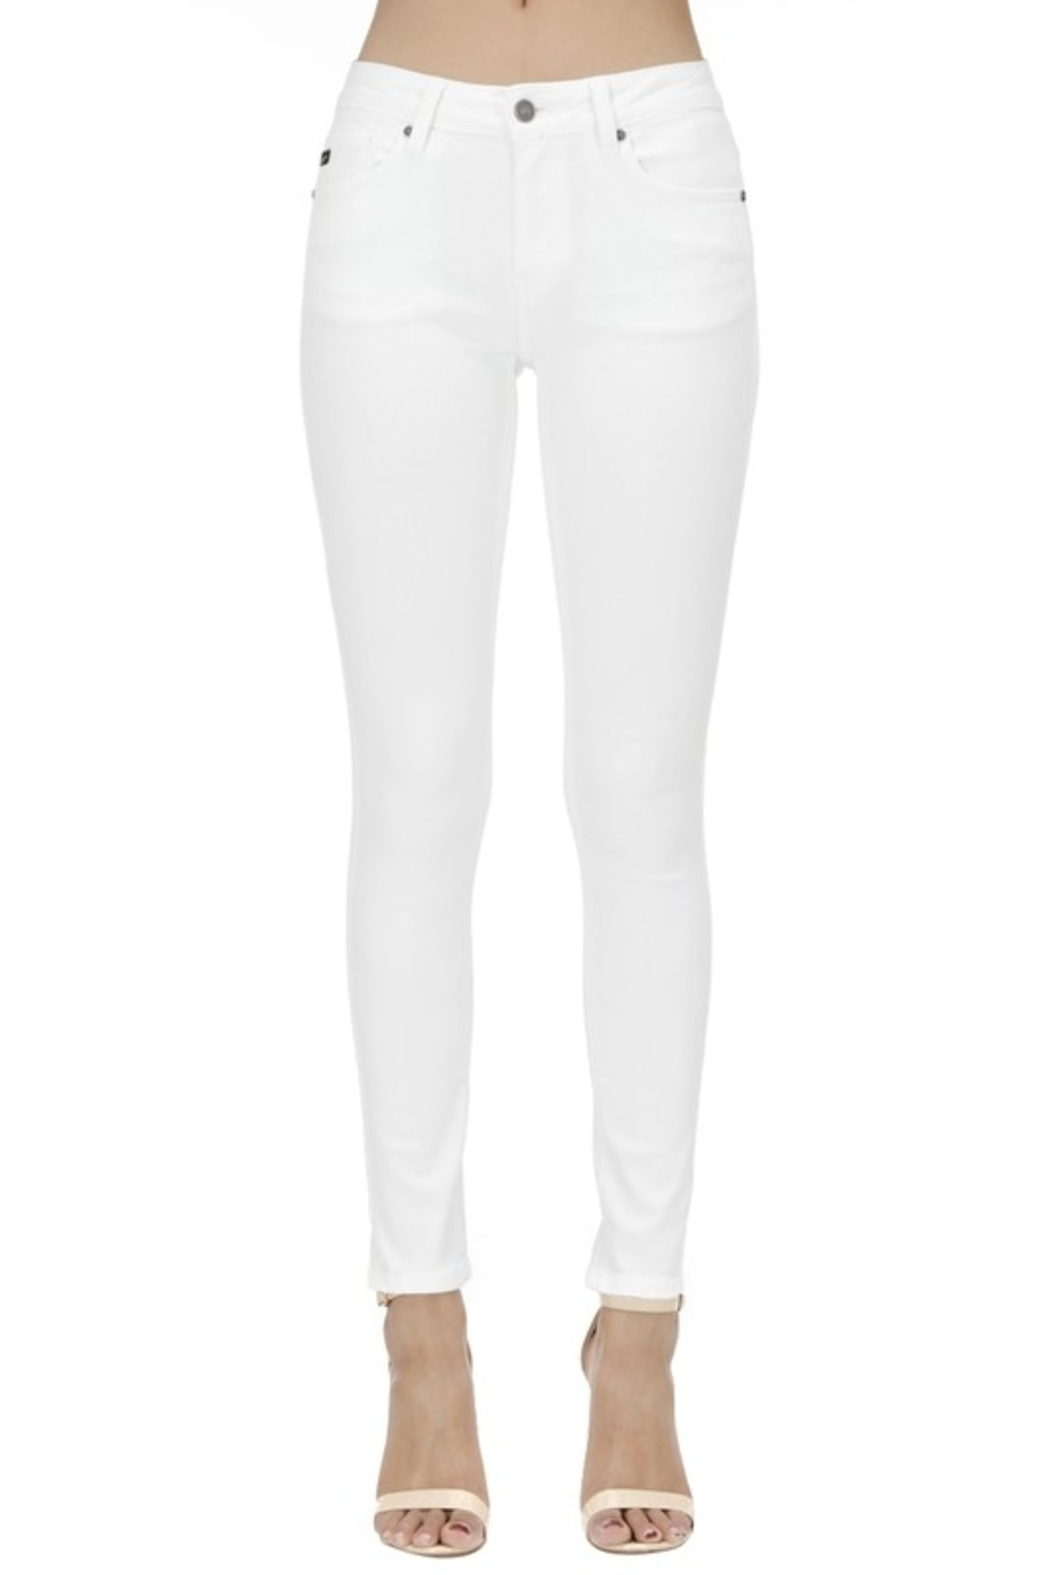 KanCan Mid Rise Ankle Skinny jean (KC7085WT) - Main Image